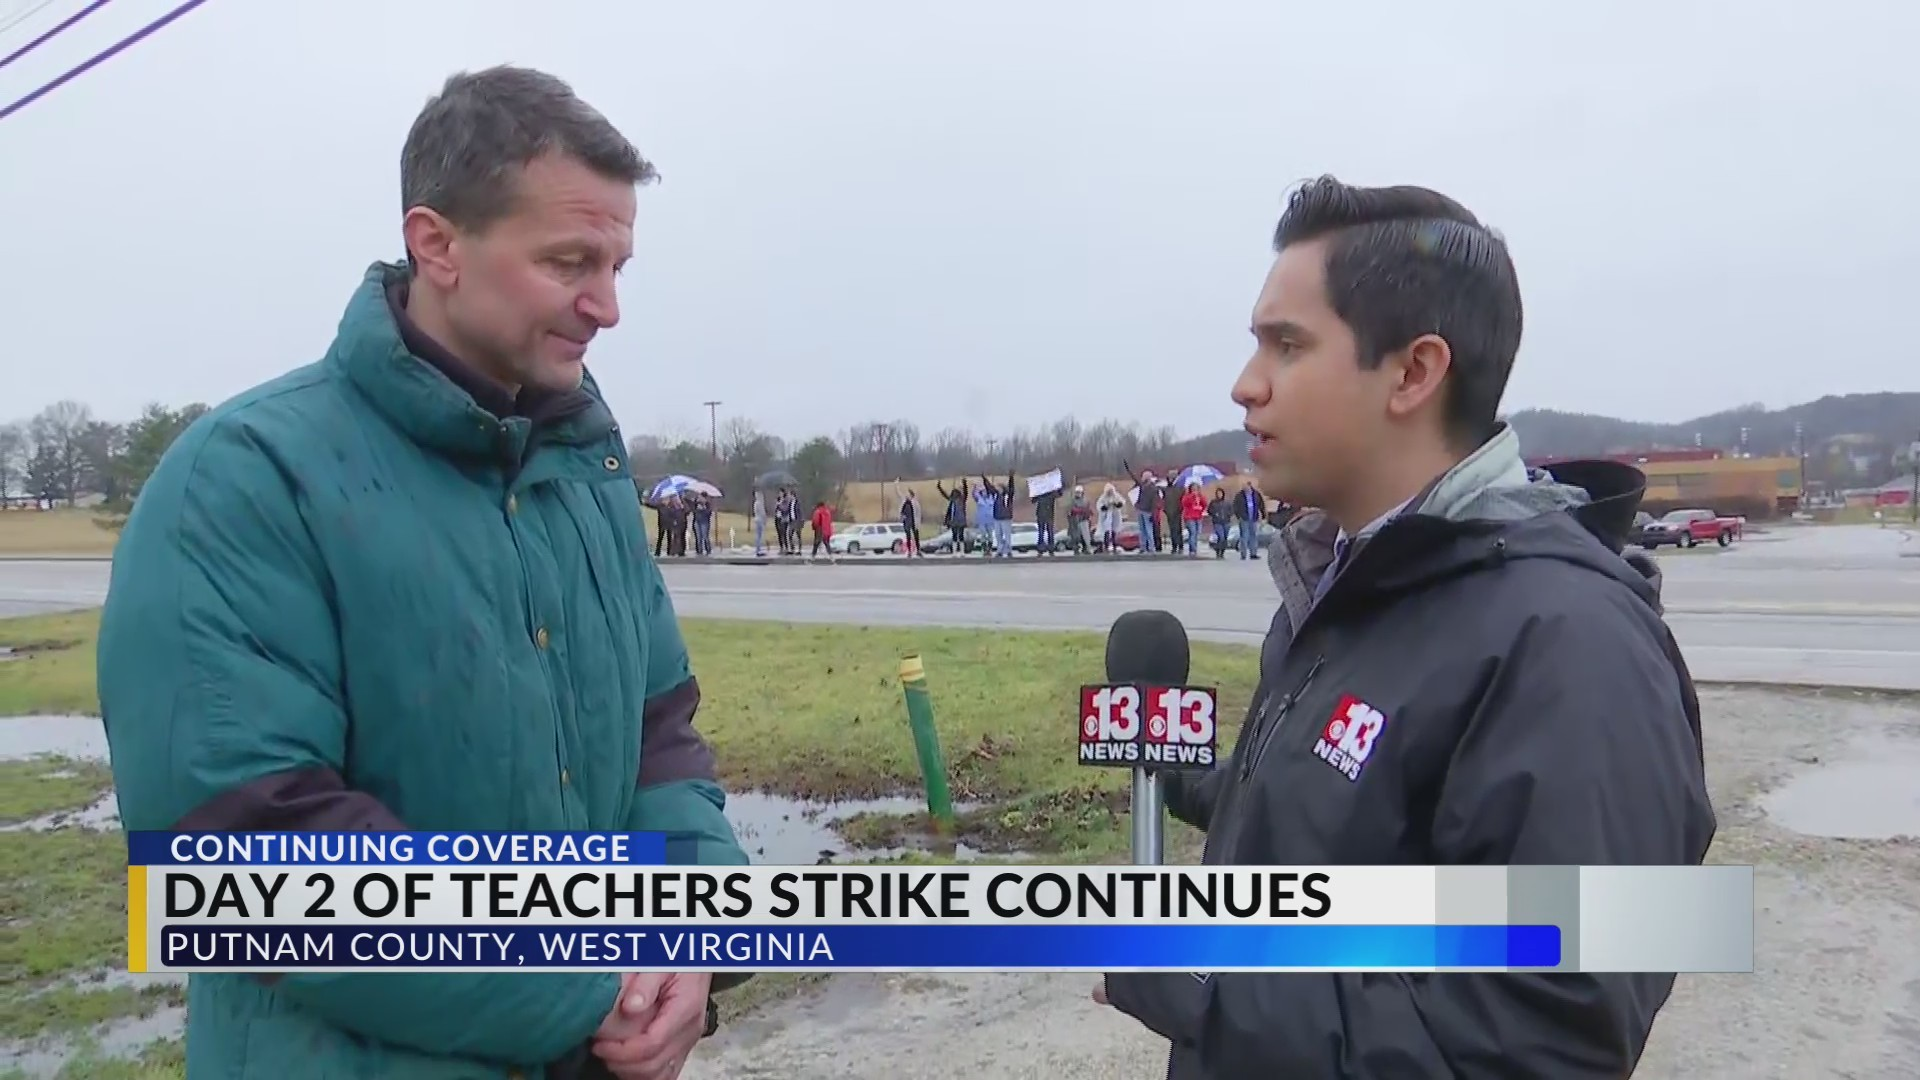 Putnam County Schools stay open, teachers continue to strike